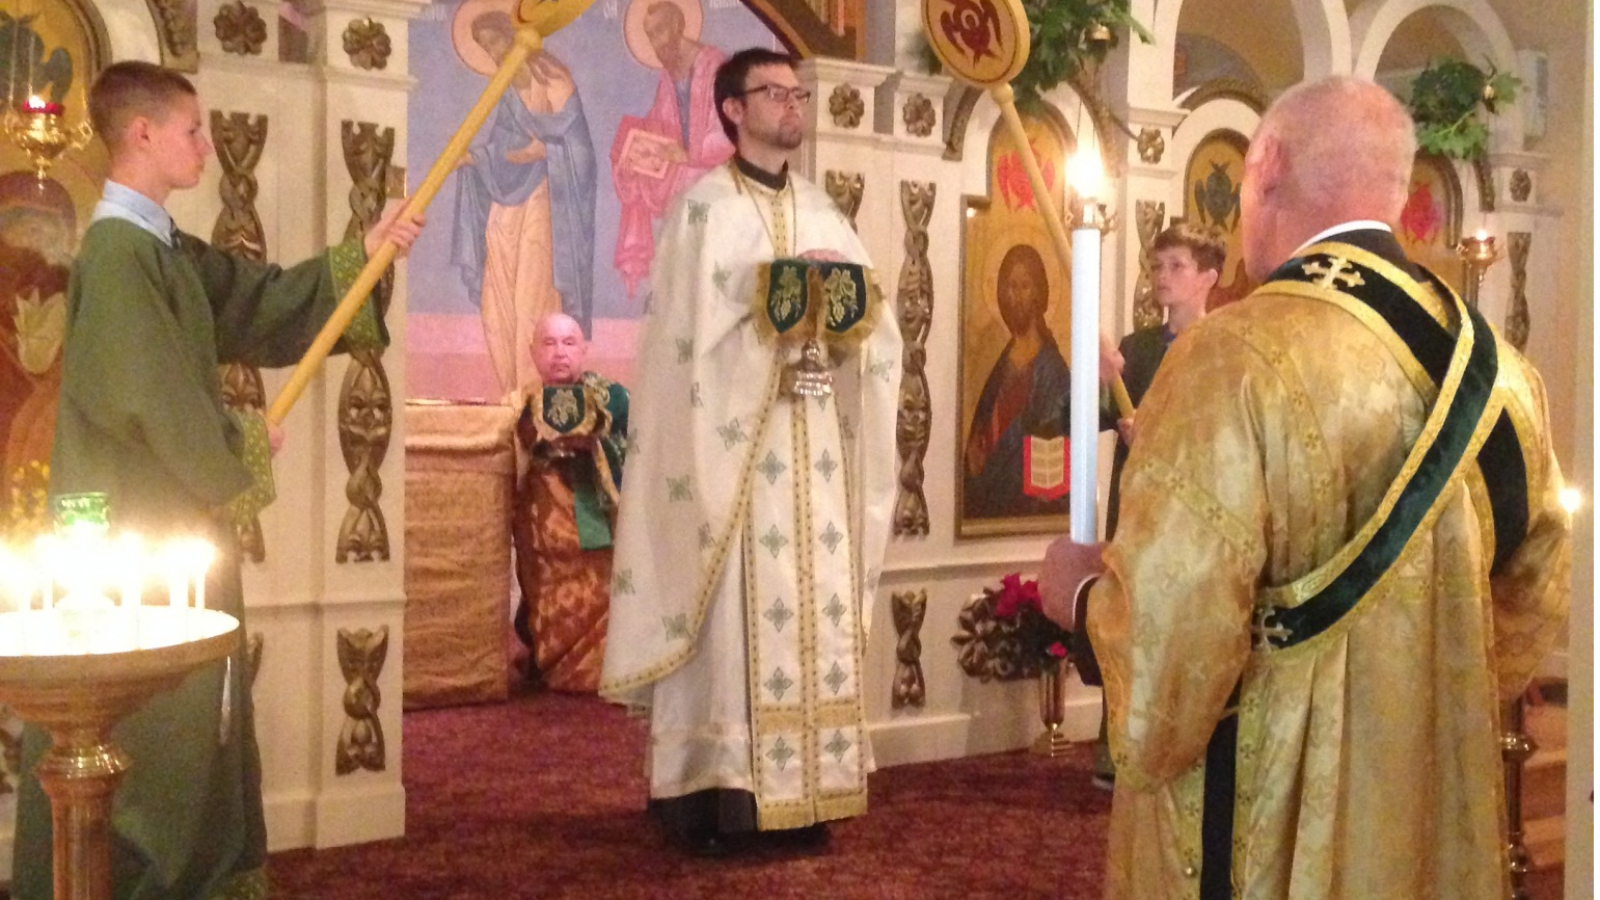 Father Mathew Leading Service at St. Gregory of Nyssa Orthodox Church